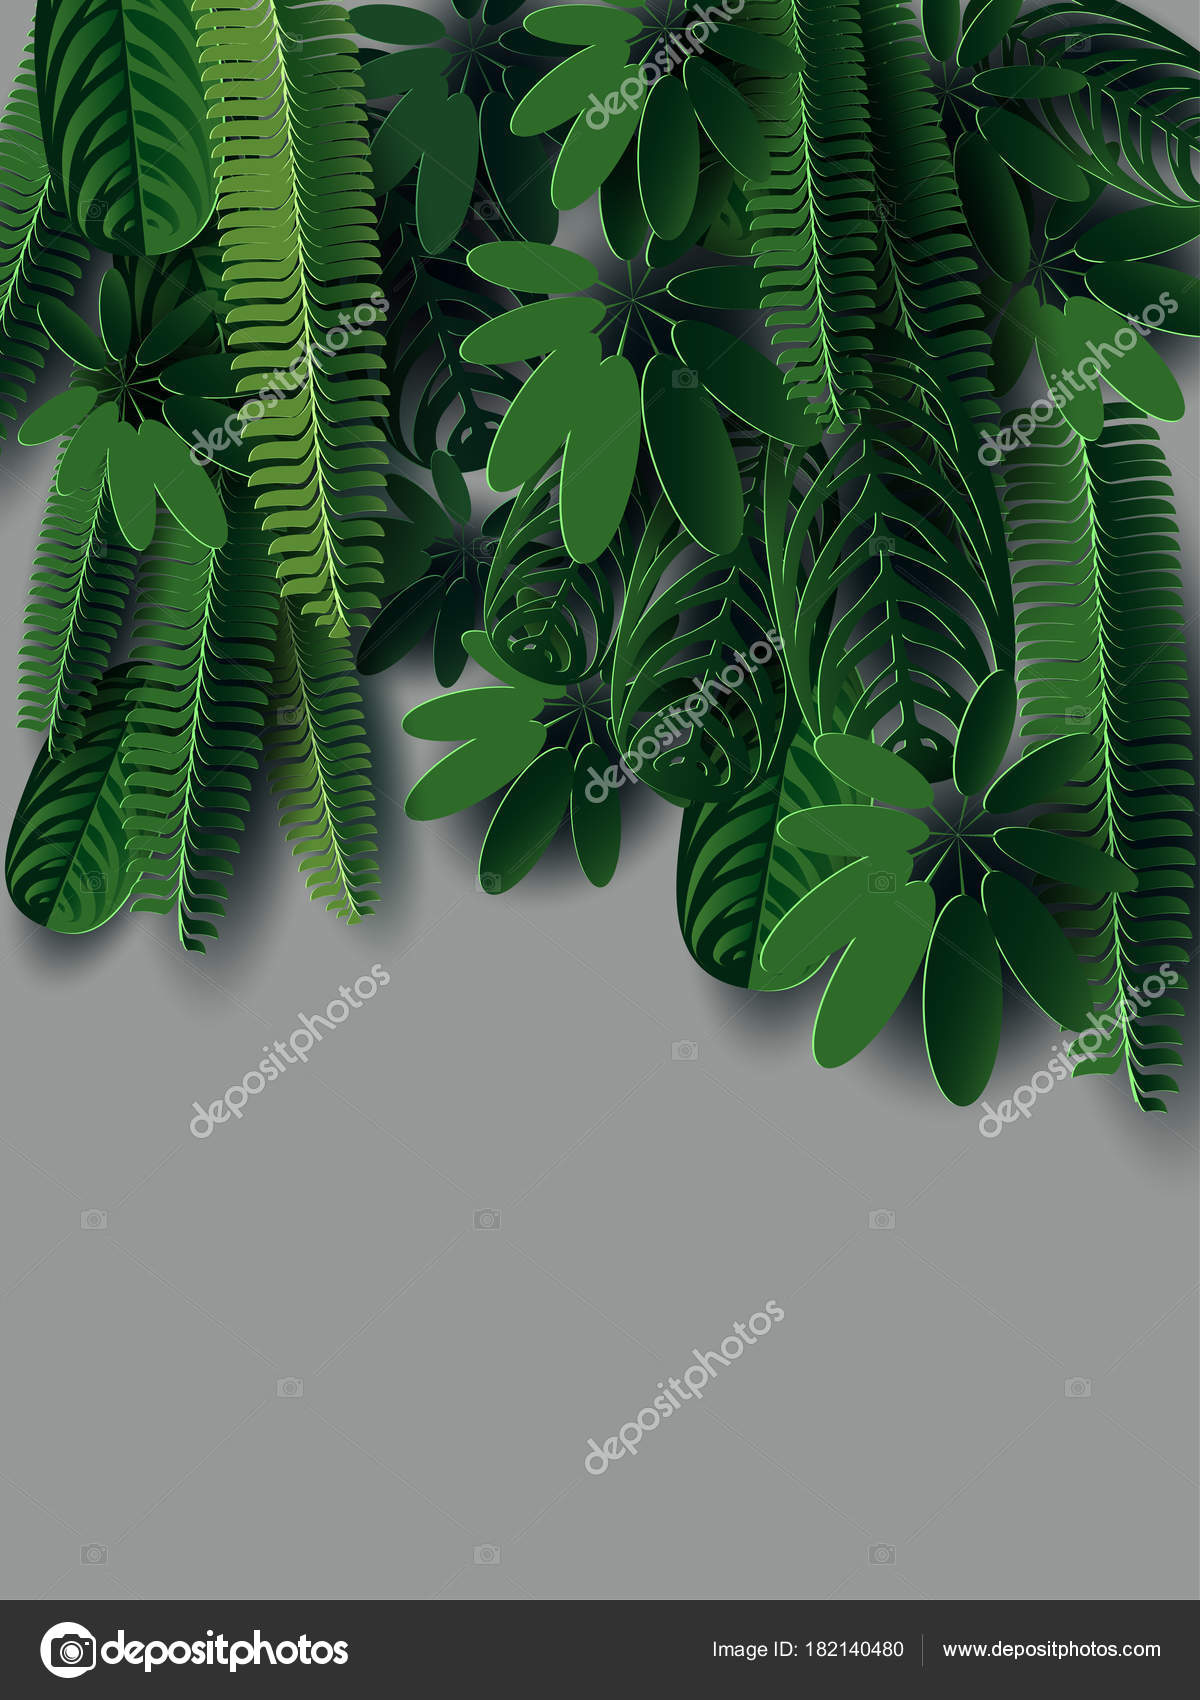 Composition of tropical leaves in the style of cut paper for spa design, exotic travel, holidays, recreation, wedding